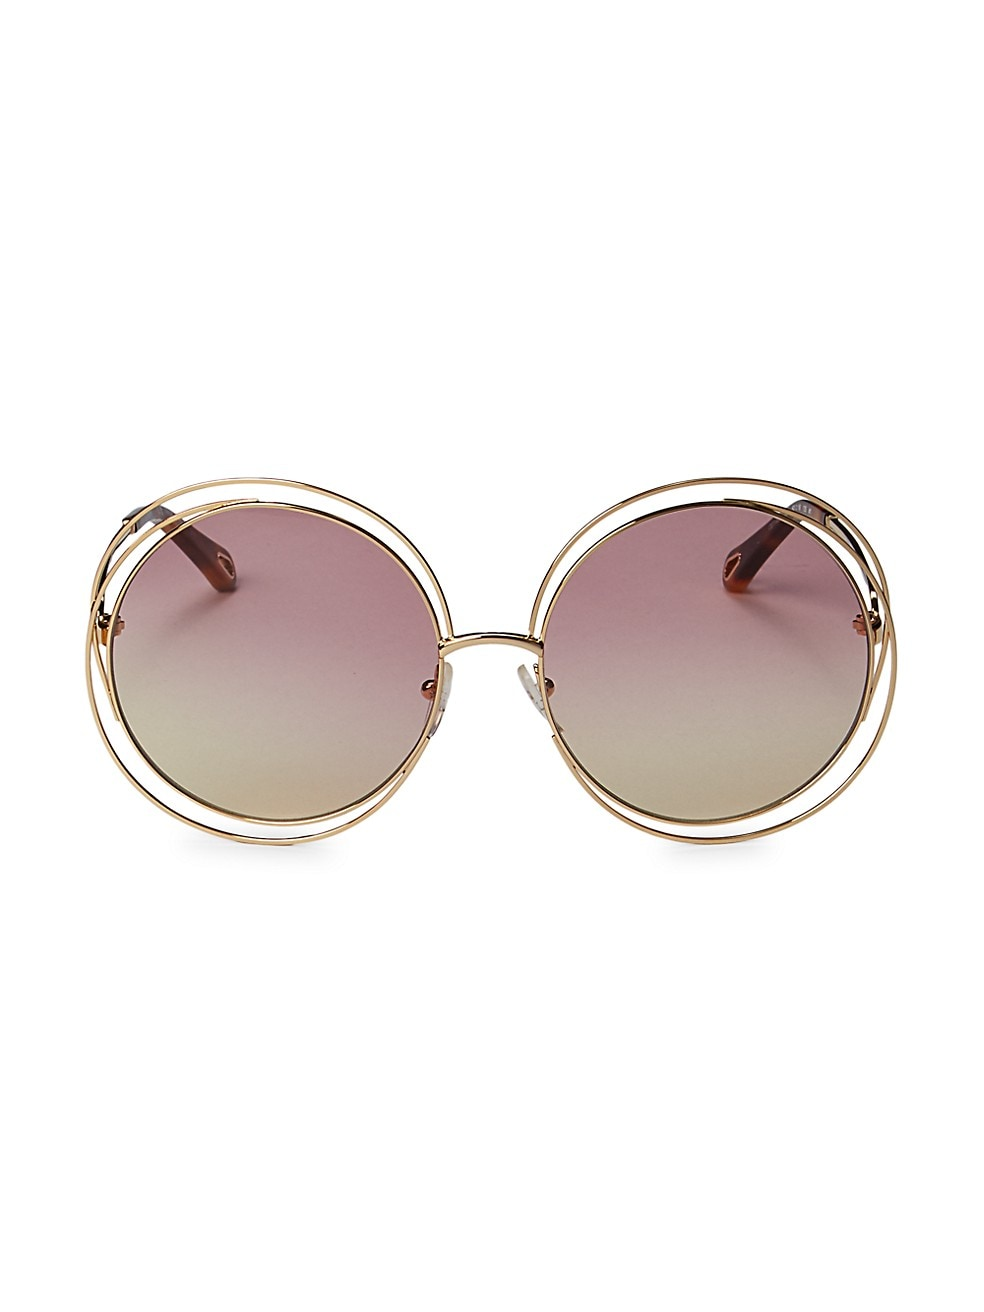 Chloé 58MM Round Sunglasses